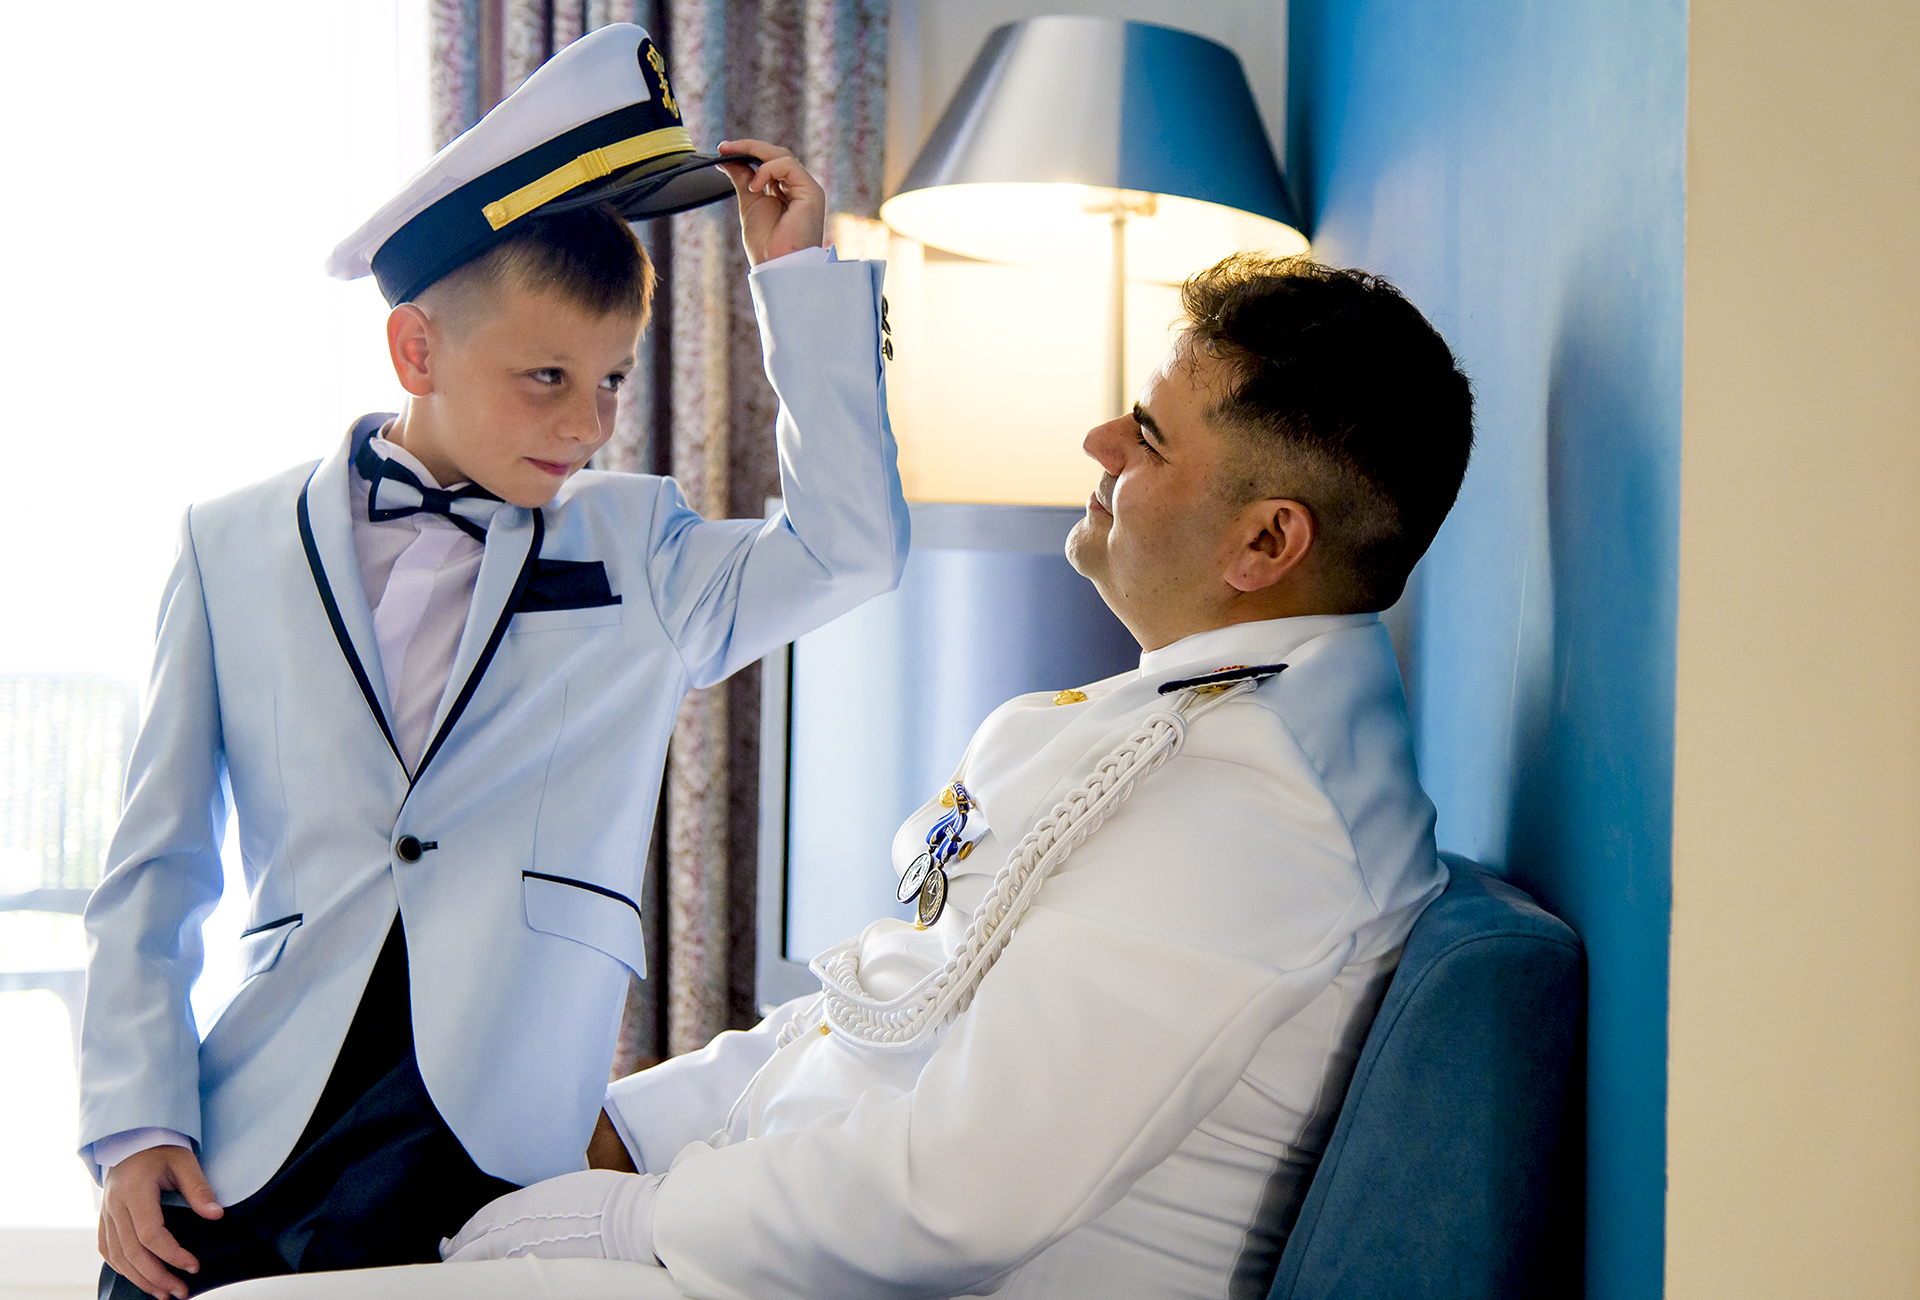 Aguilas, Spain Military Elopement Image | Sharing his military cap with his son, the groom took a moment to connect with the boy